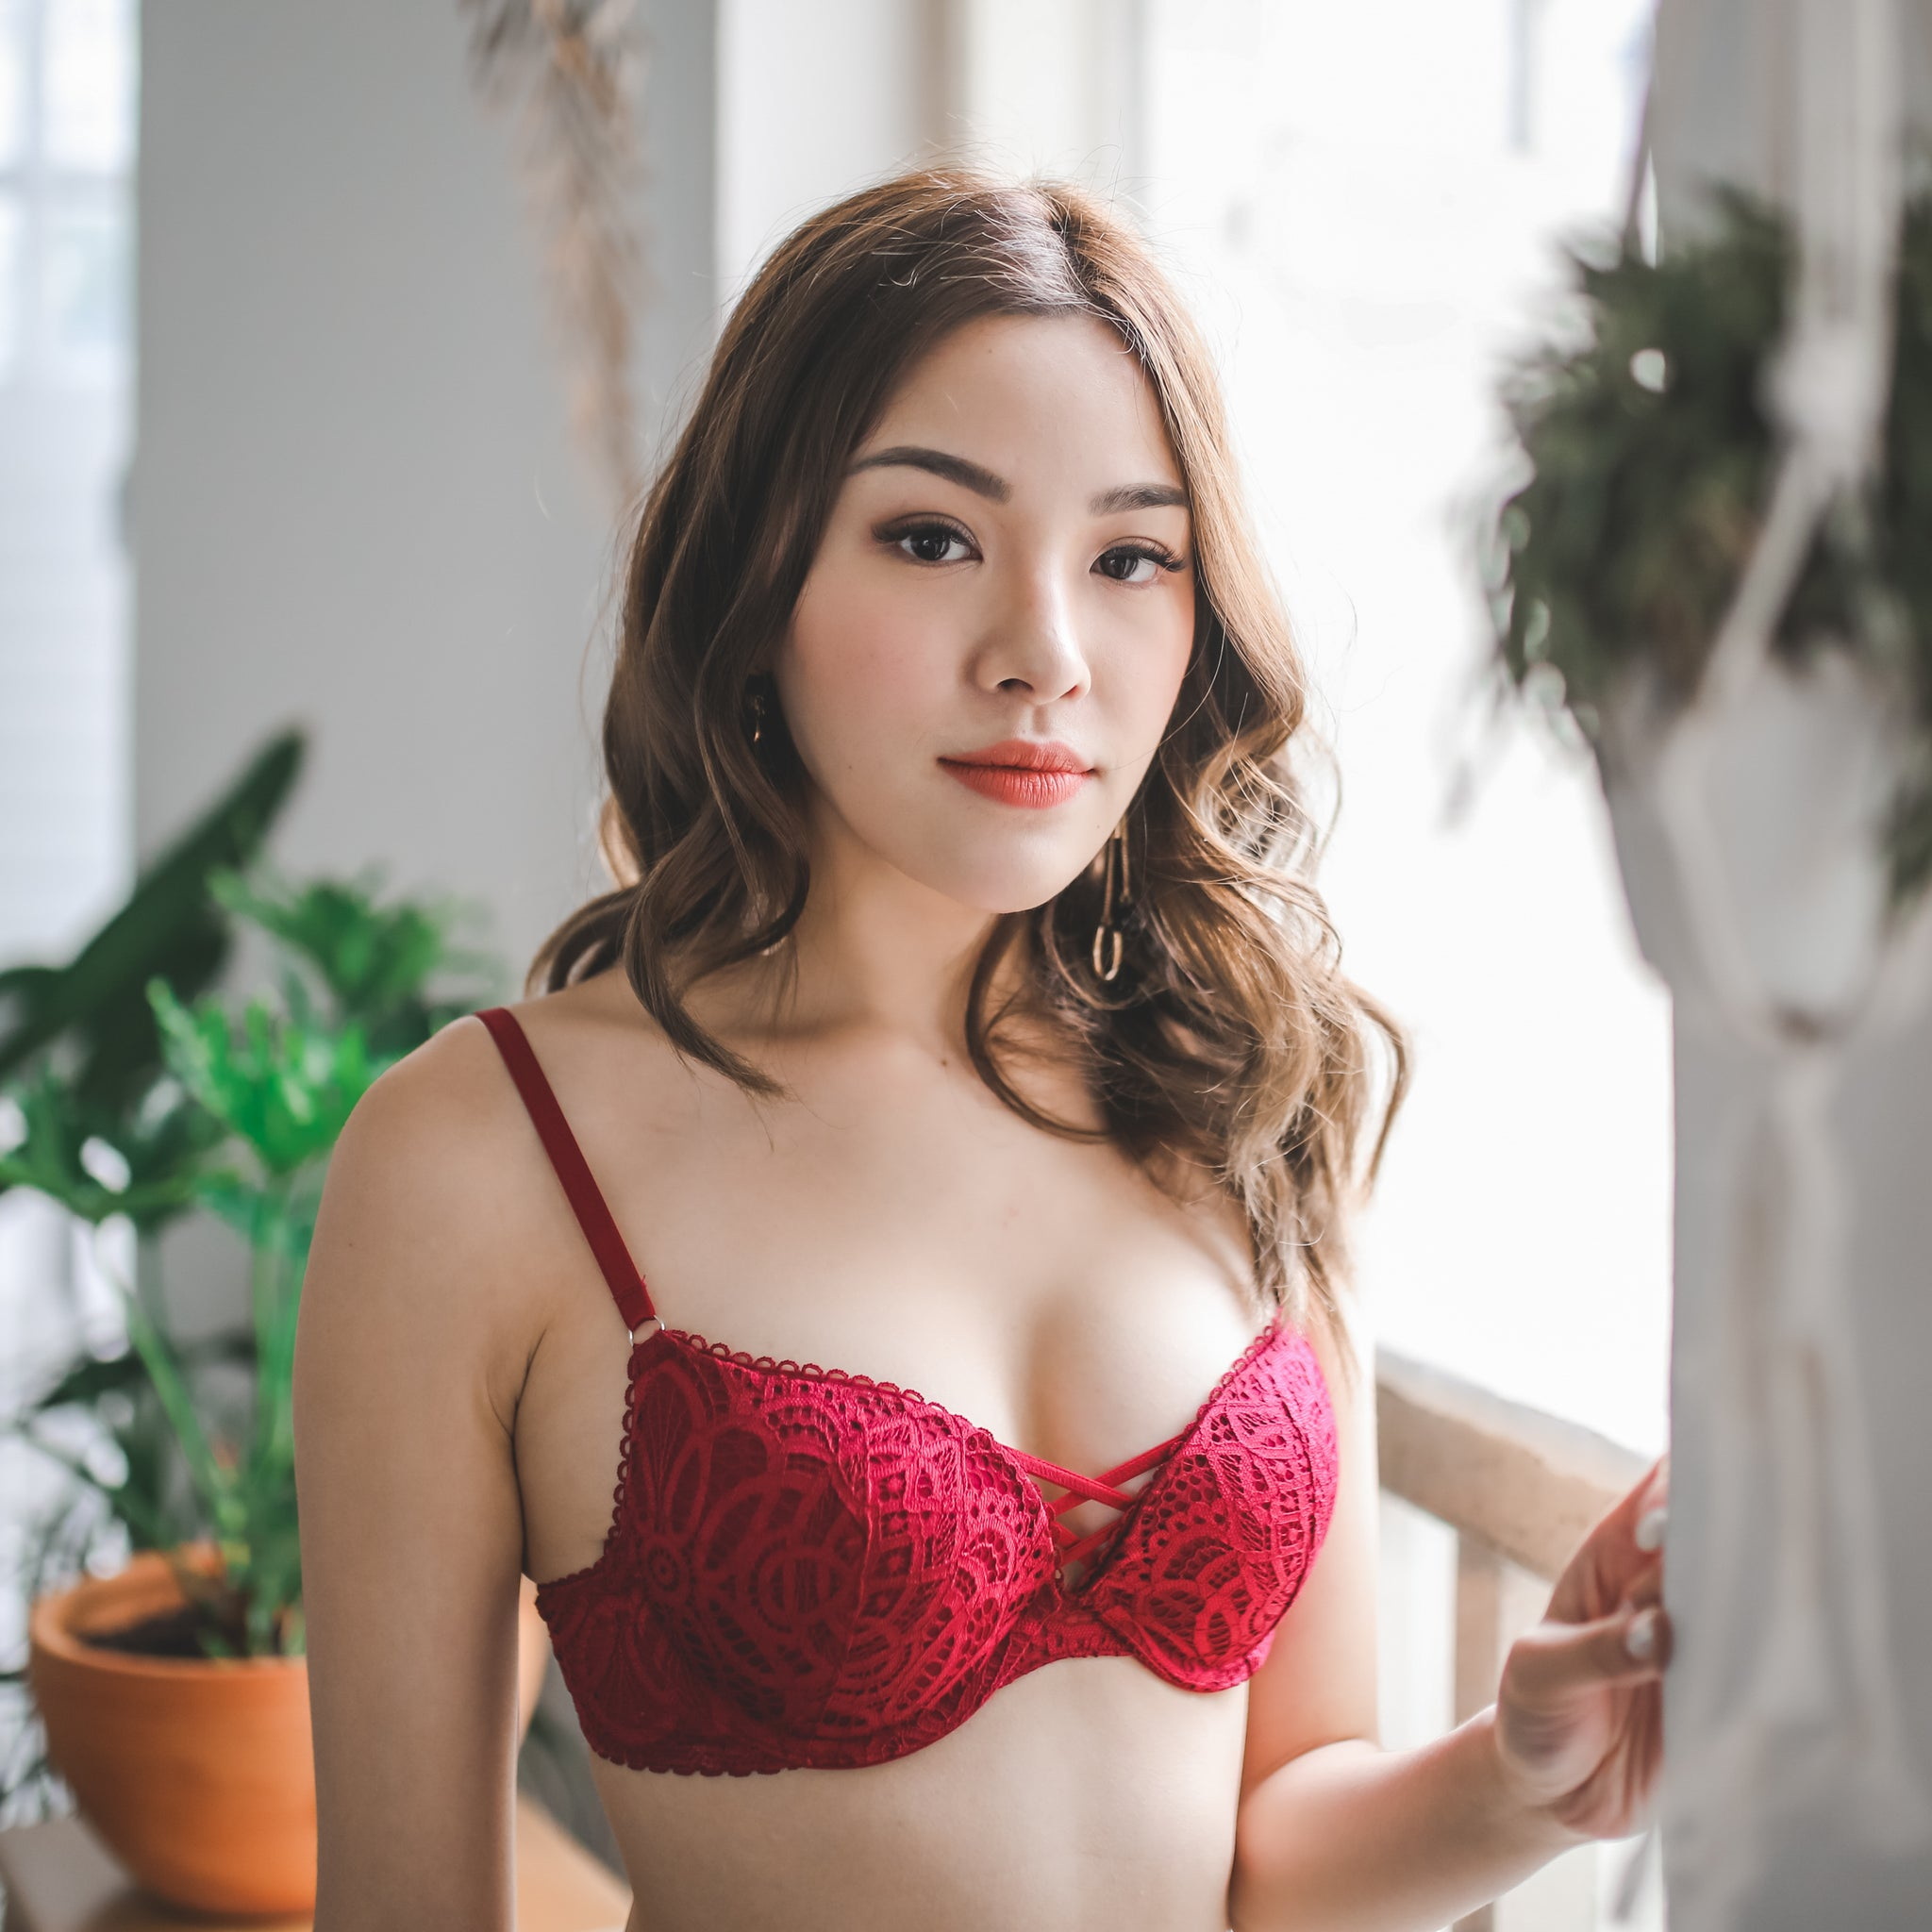 d780822faab Cross My Heart Super Push Up Bra in Spicy Red (L ONLY) - I'M IN ...